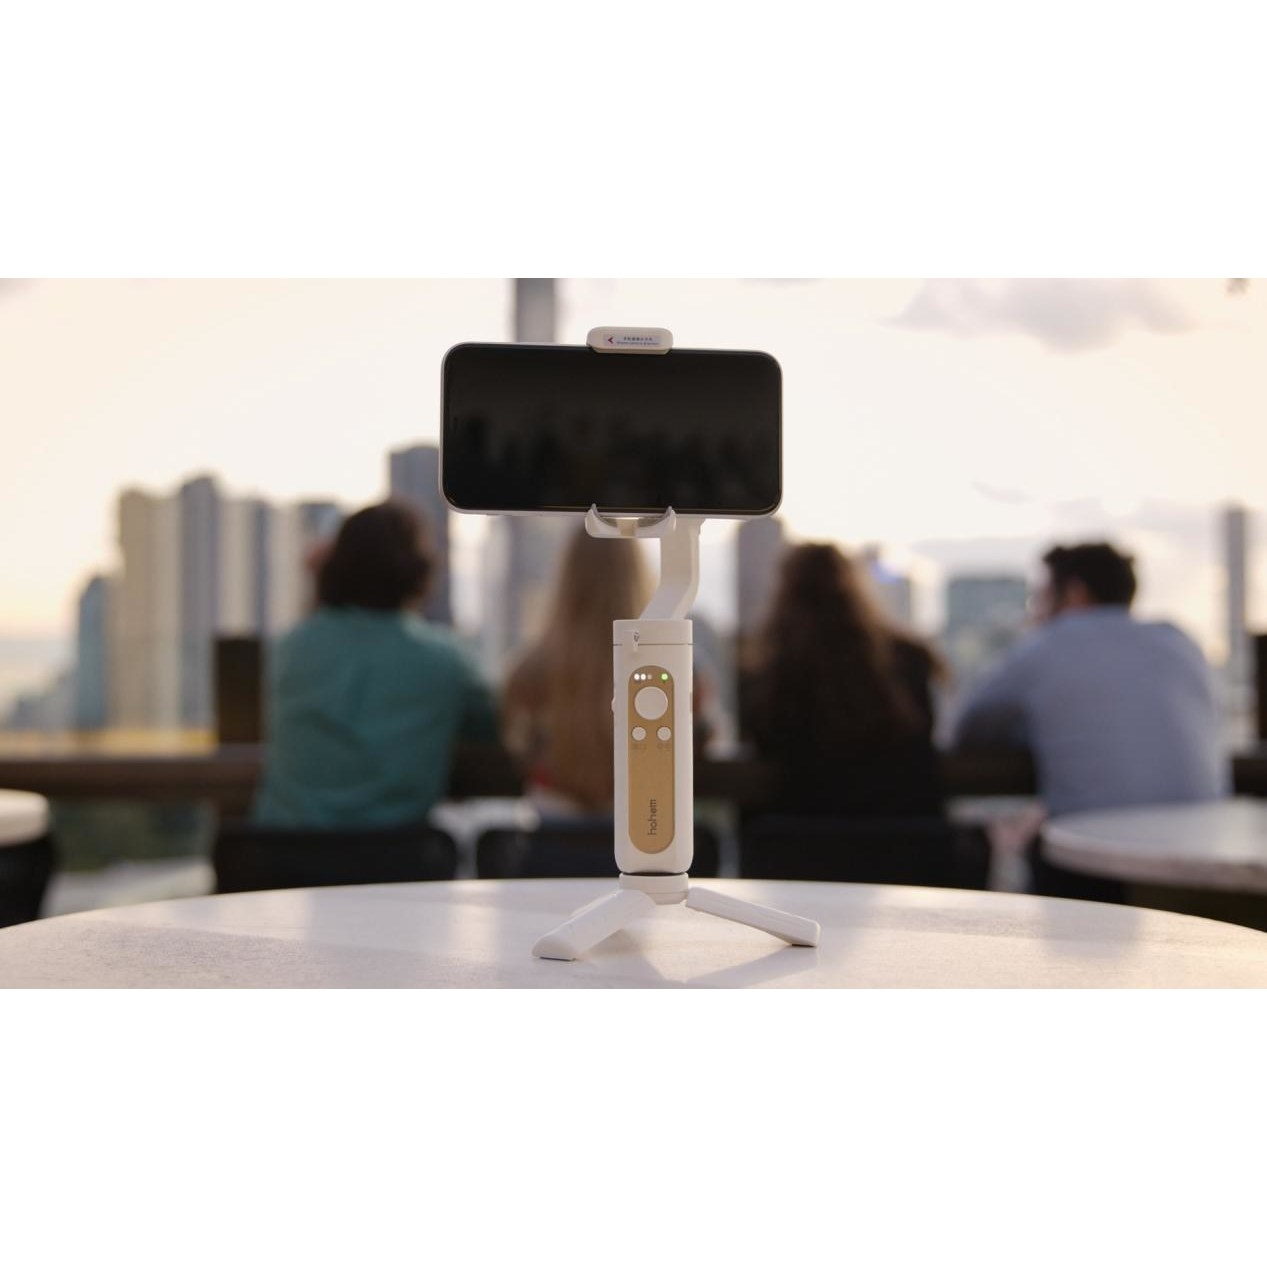 Image of article 'Hohem Tech Wins a 2020 SVIEF Disruptive Innovation Award for world's lightest 3-axis smartphone gimbal'